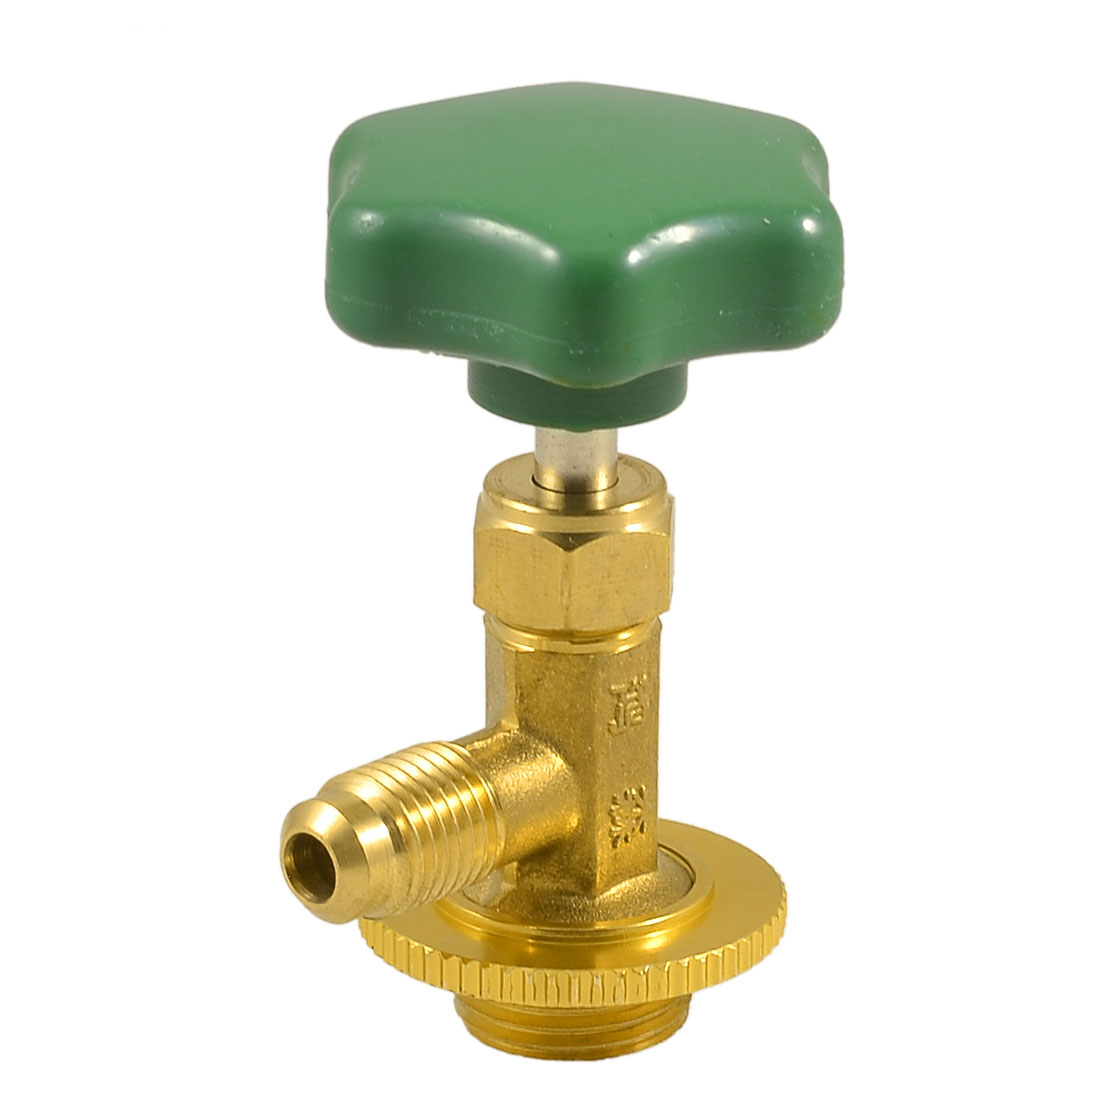 Gold Tone Metal Valve Bottle Opener for R134a Refrigerant